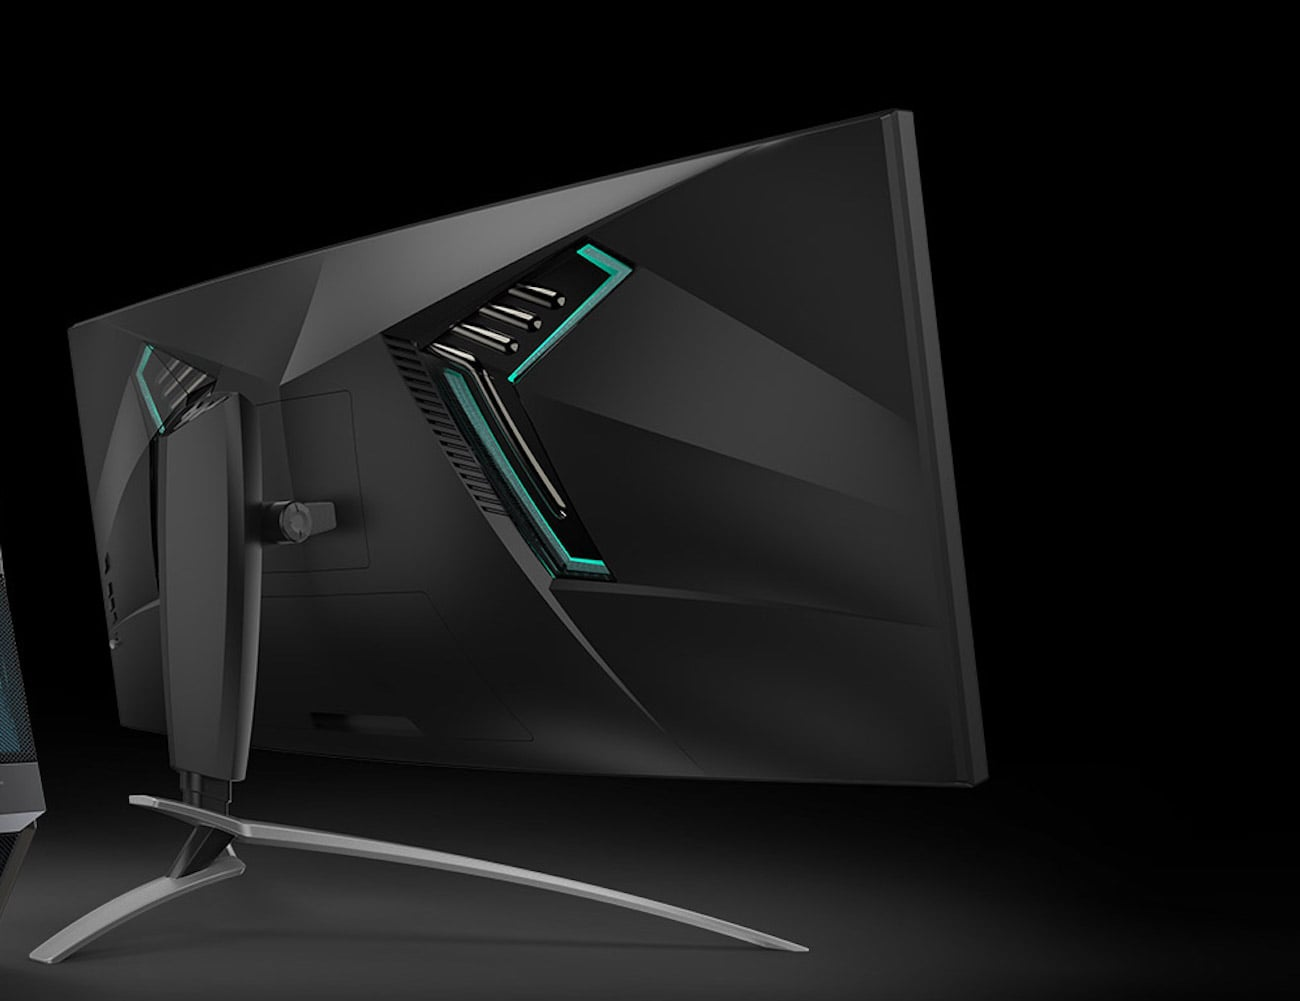 Acer+Predator+X35+Curved+Gaming+Monitor